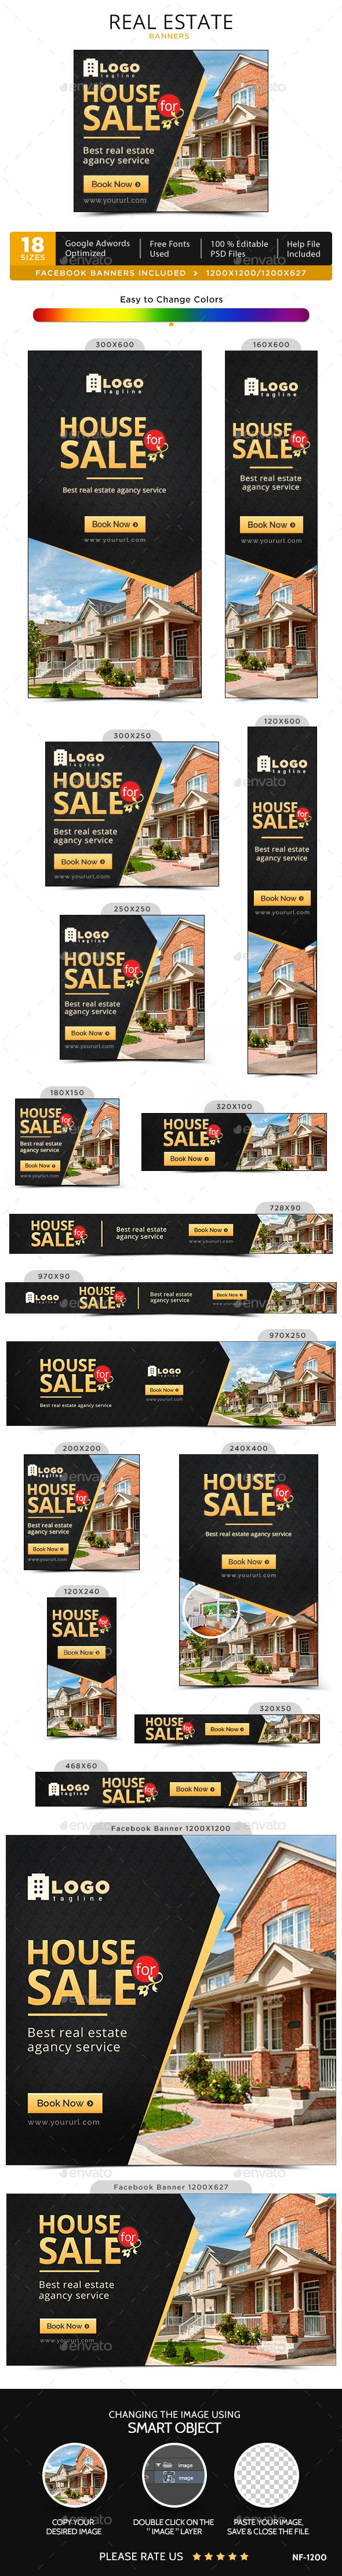 Real Estate Web Banners Template PSD. Download here: http://graphicriver.net/item/real-estate-banners/15633825?ref=ksioks